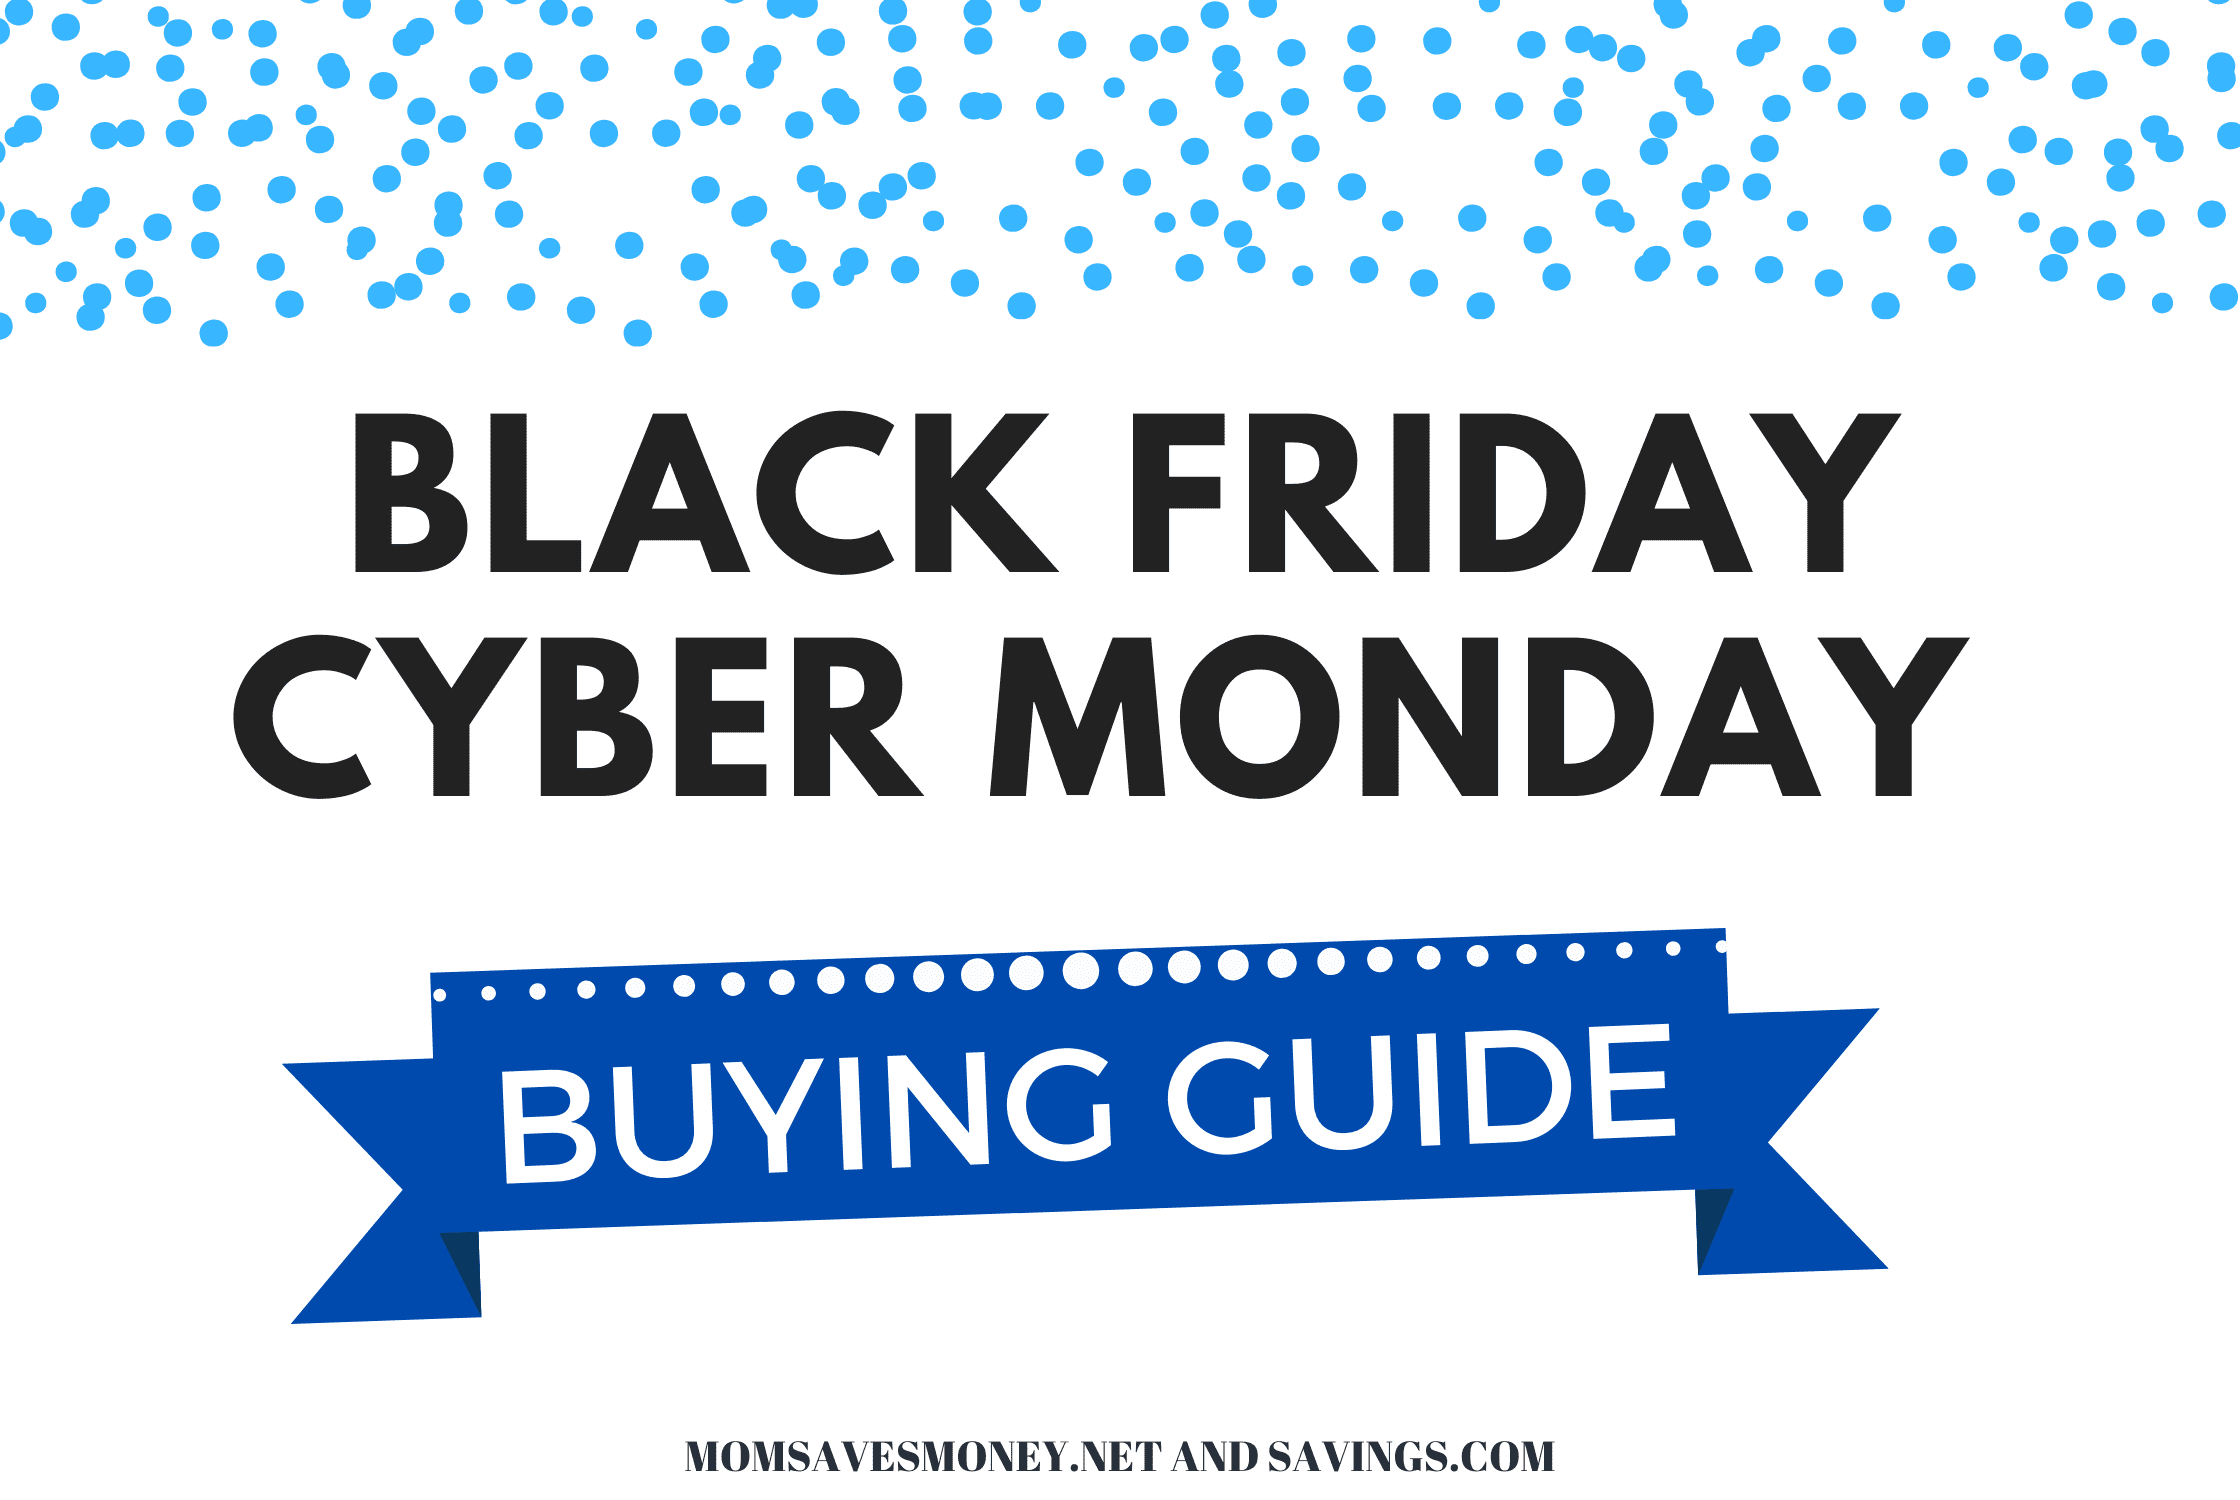 Black Friday Cyber Monday 2020 Buying Guide From Savings Com Mom Saves Money